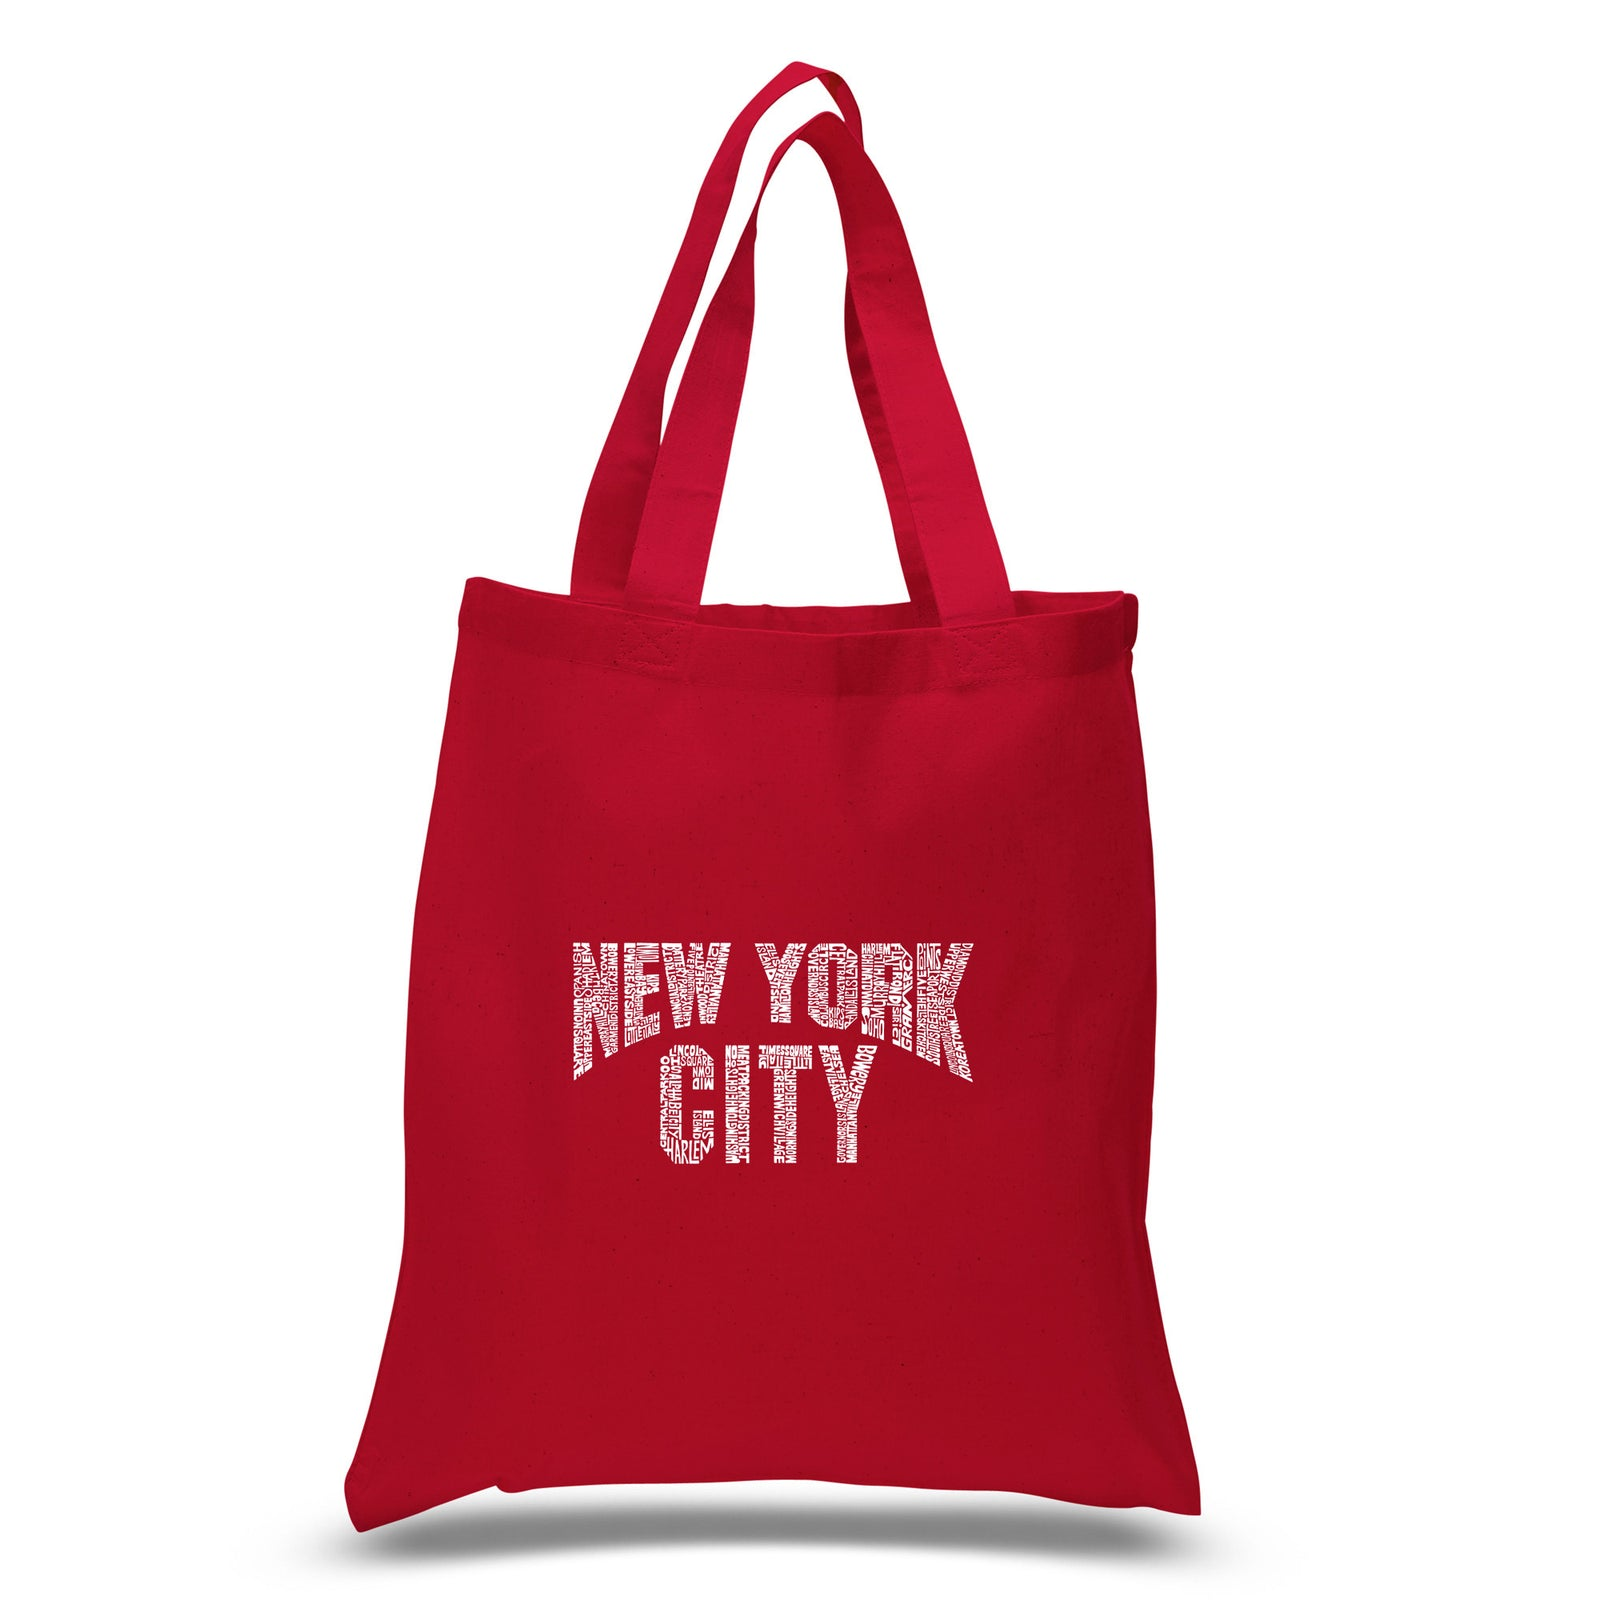 Small Tote Bag - NYC NEIGHBORHOODS